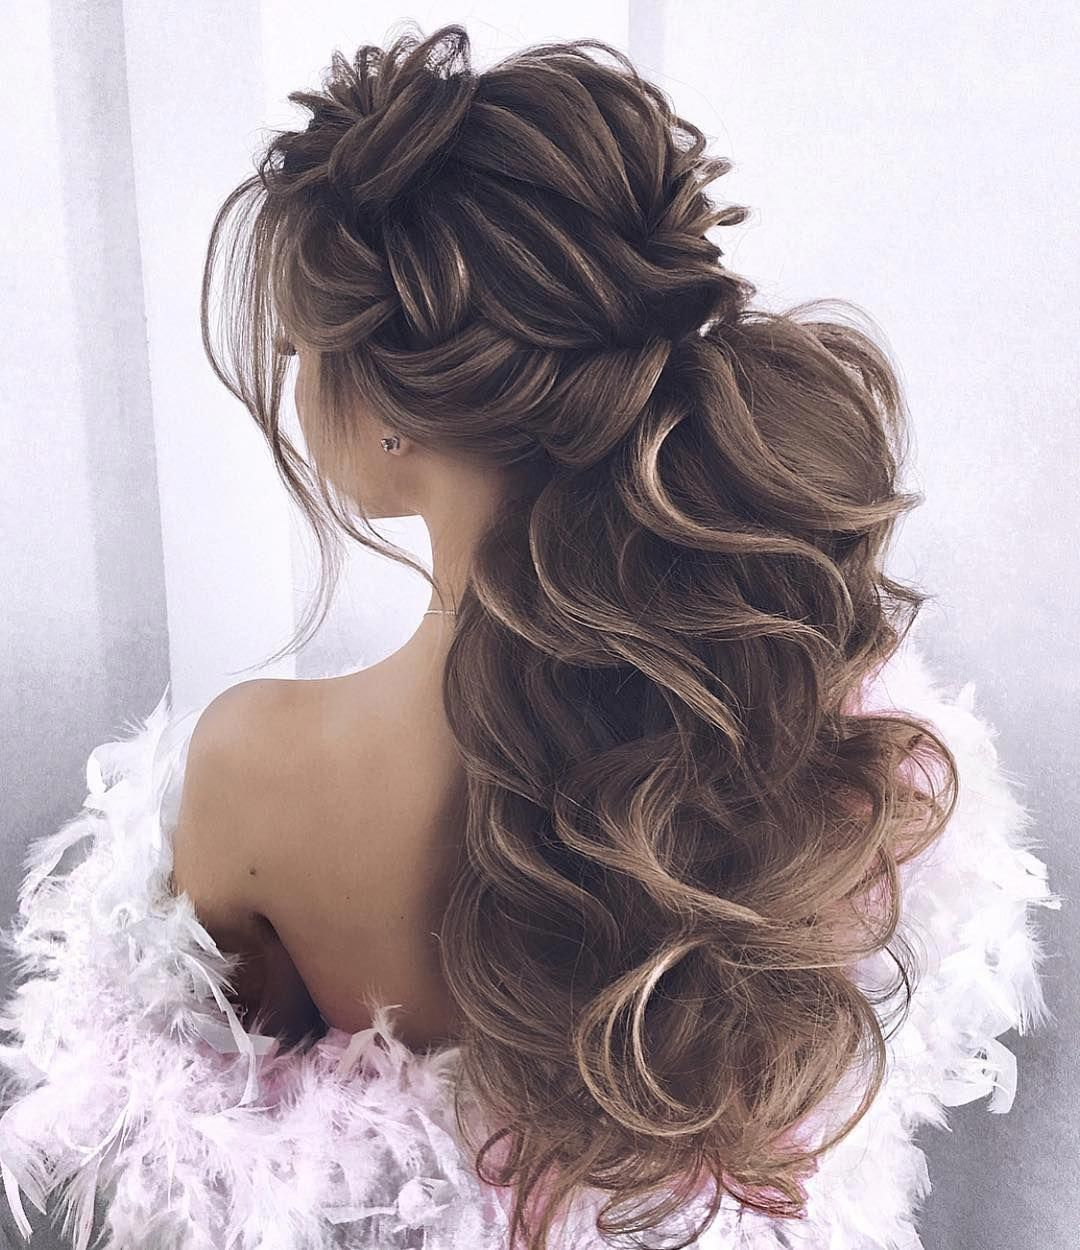 30 Beautiful Prom Hairstyles That Ll Steal The Night Best Prom Hairstyle Ideas Braided Updo Braid Half Braids For Long Hair Hair Inspiration Hair Styles